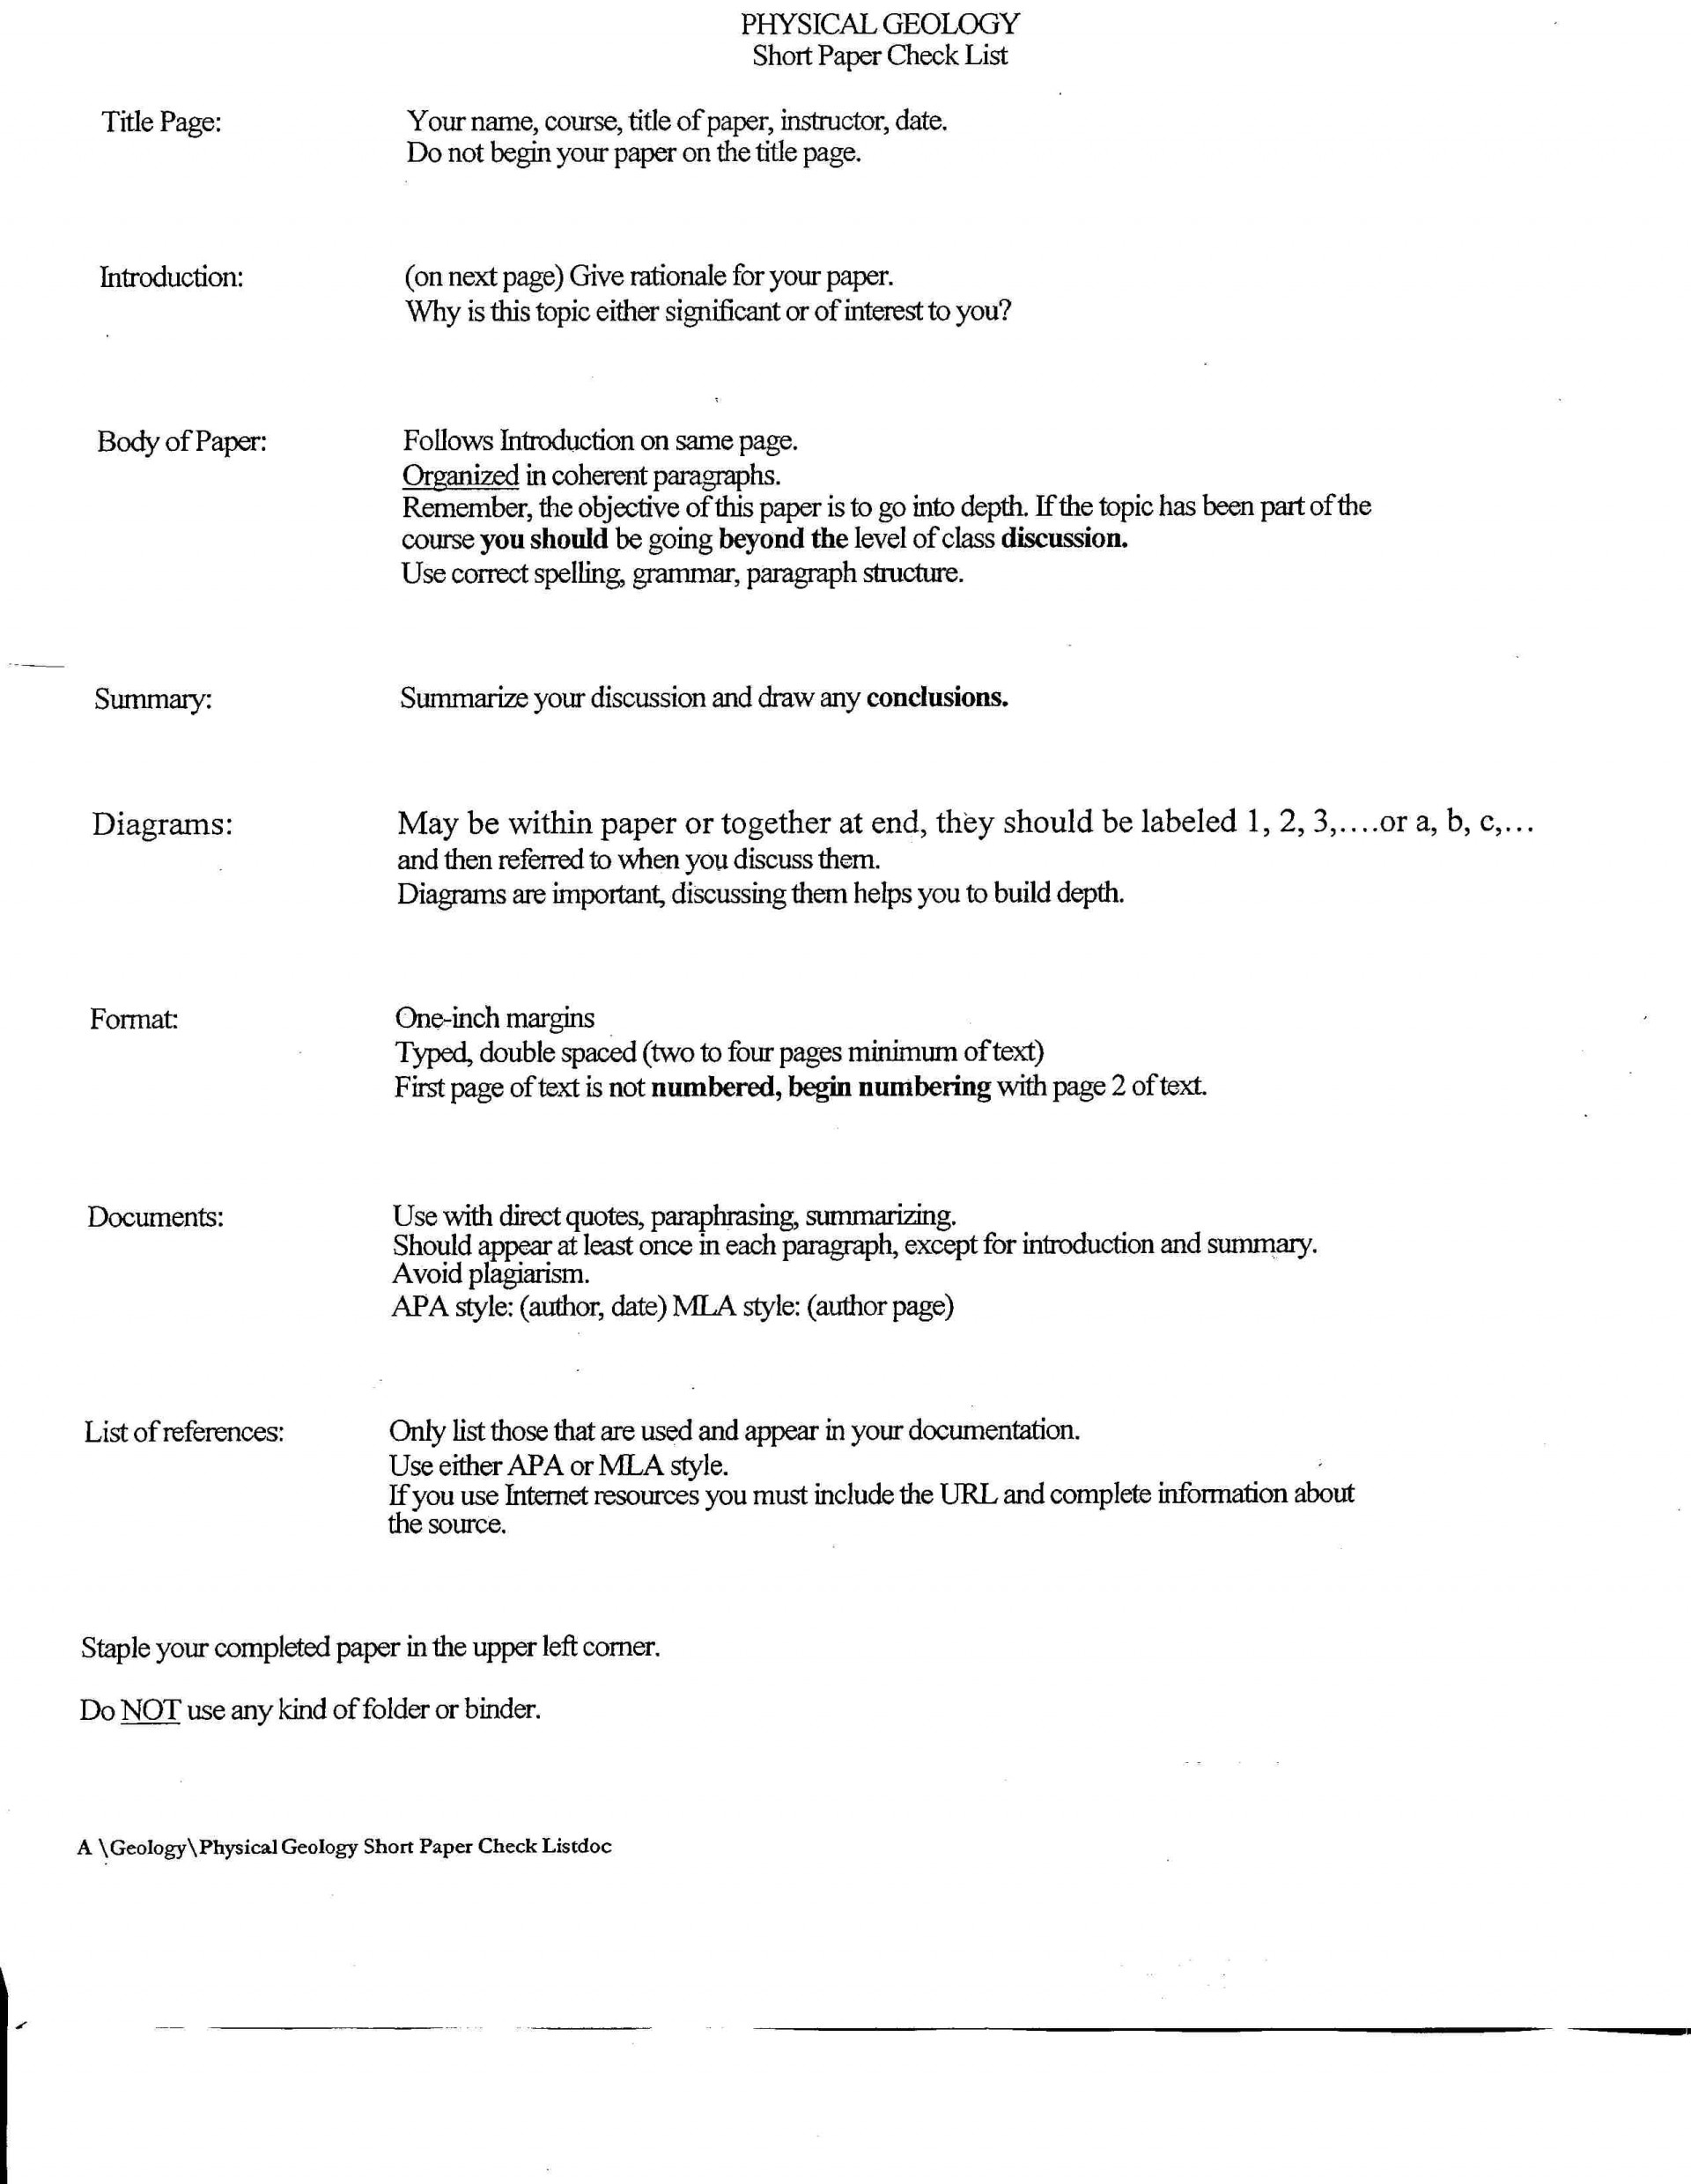 009 Asa Research Paper Format Example Short Checklist Staggering 1920